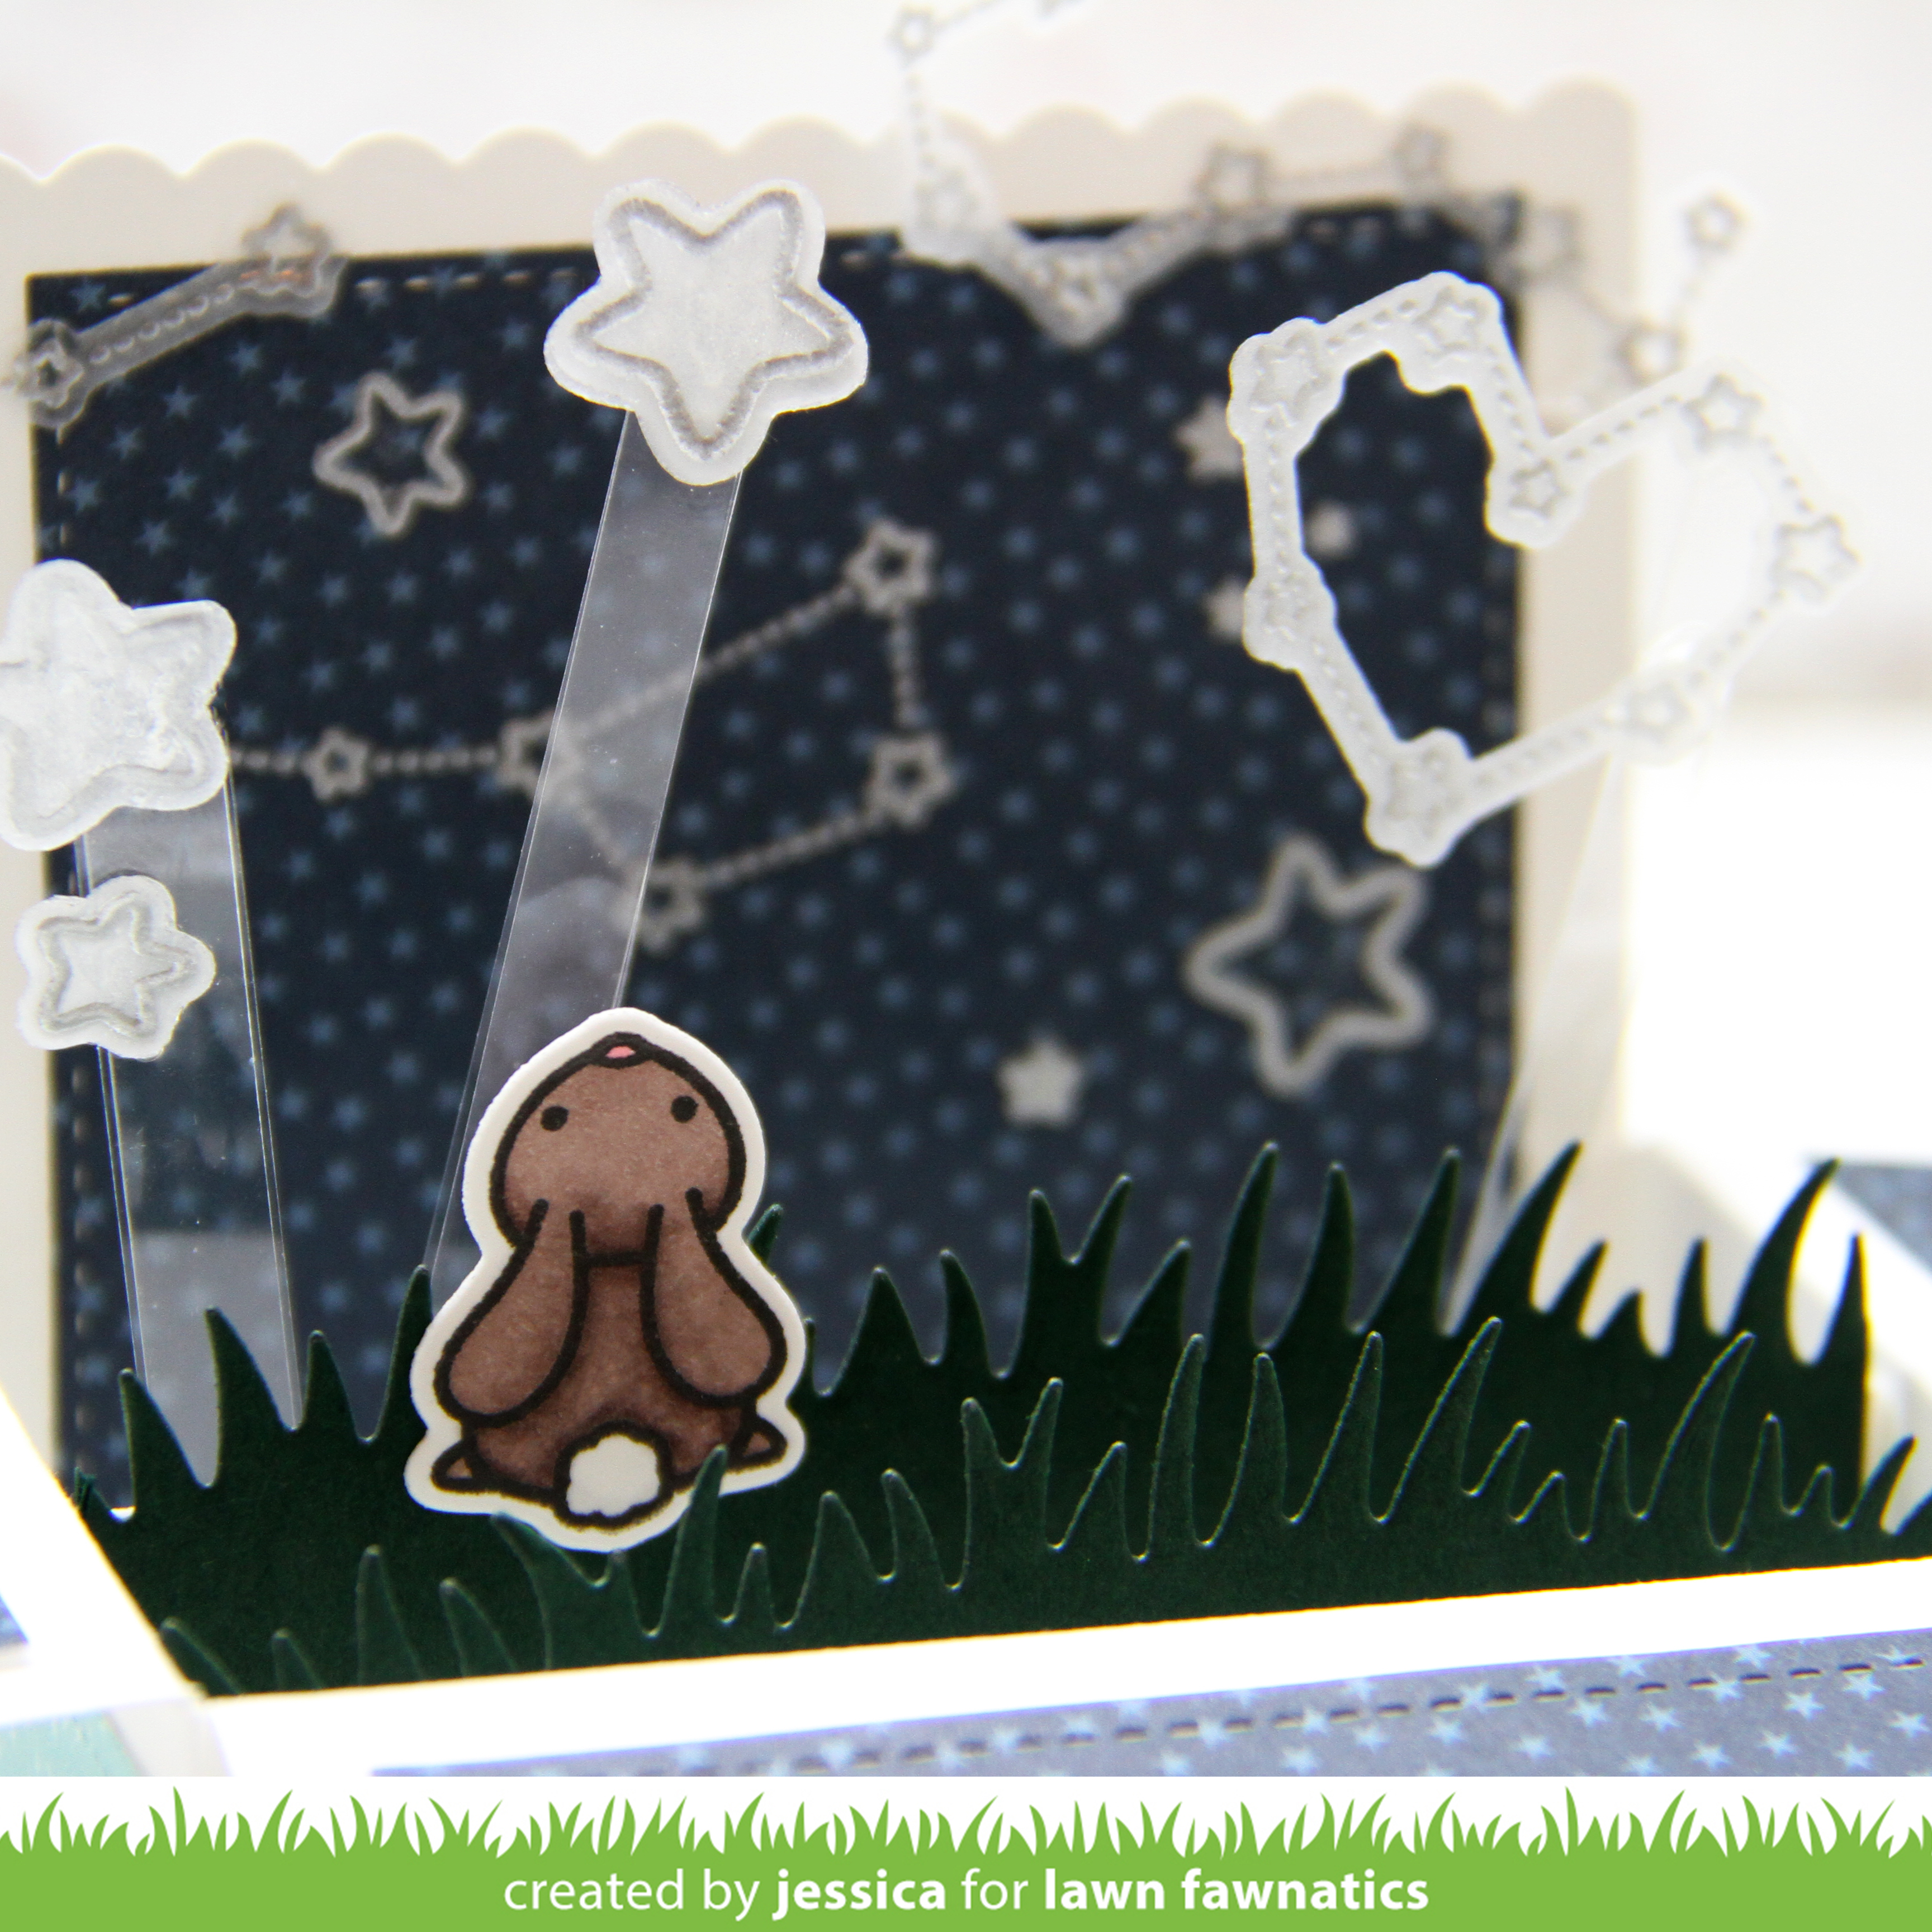 Reach for the Stars by Jessica Frost-Ballas for Lawn Fawnatics